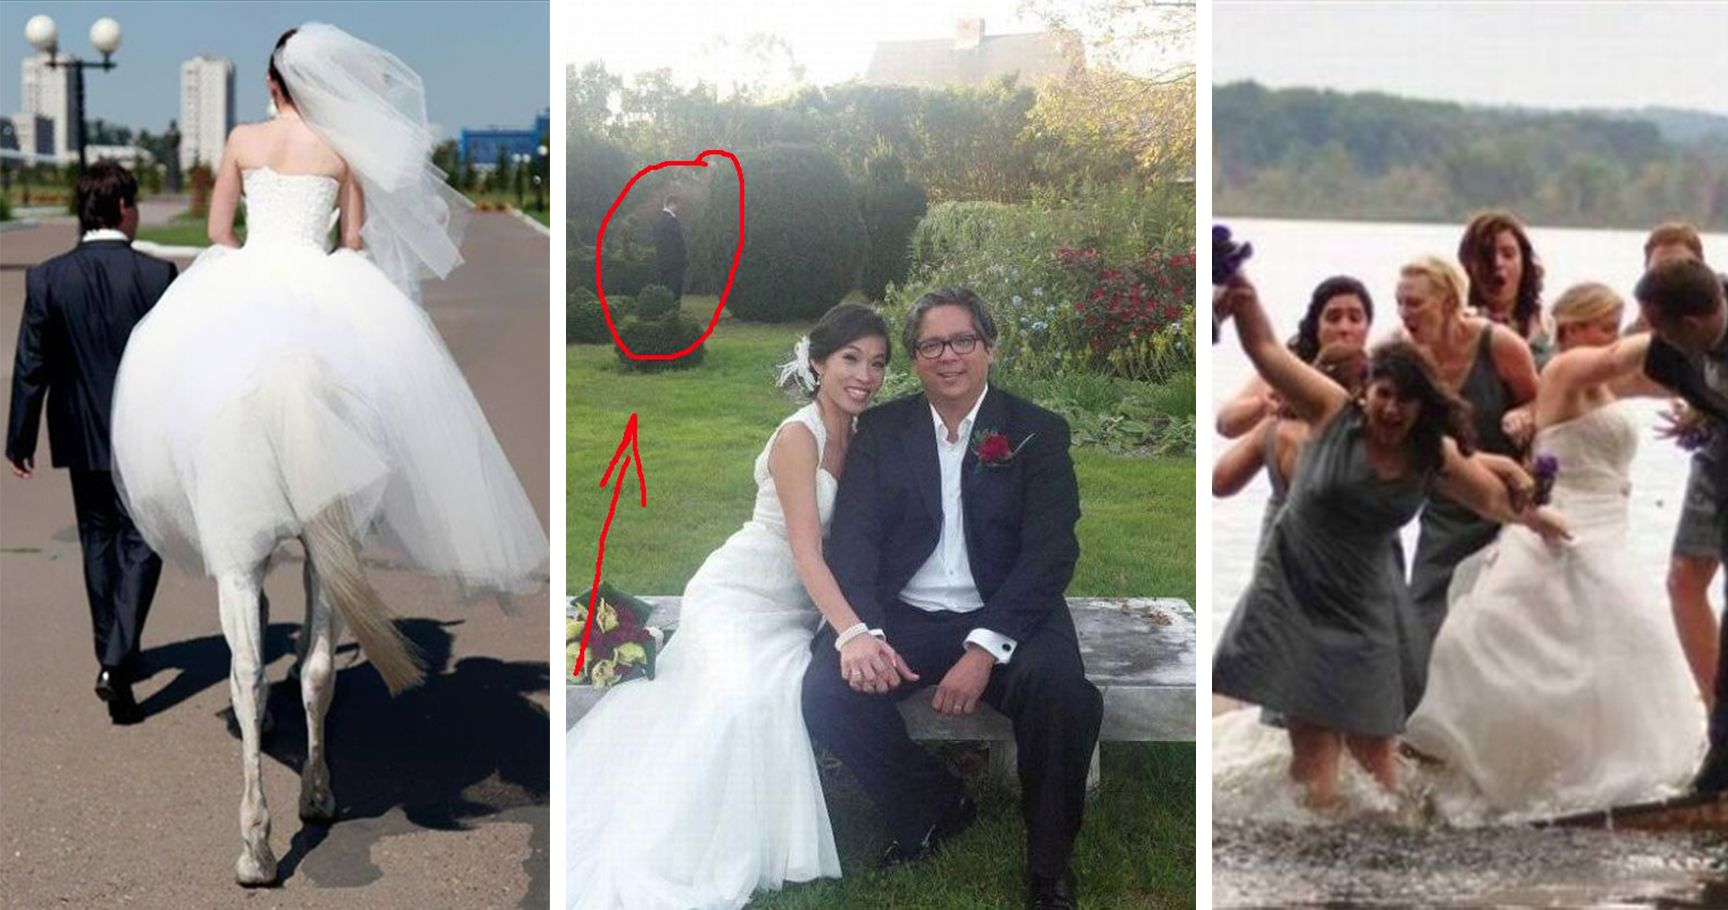 15 Wedding Photo Fails That Will Have You Cringing So Hard